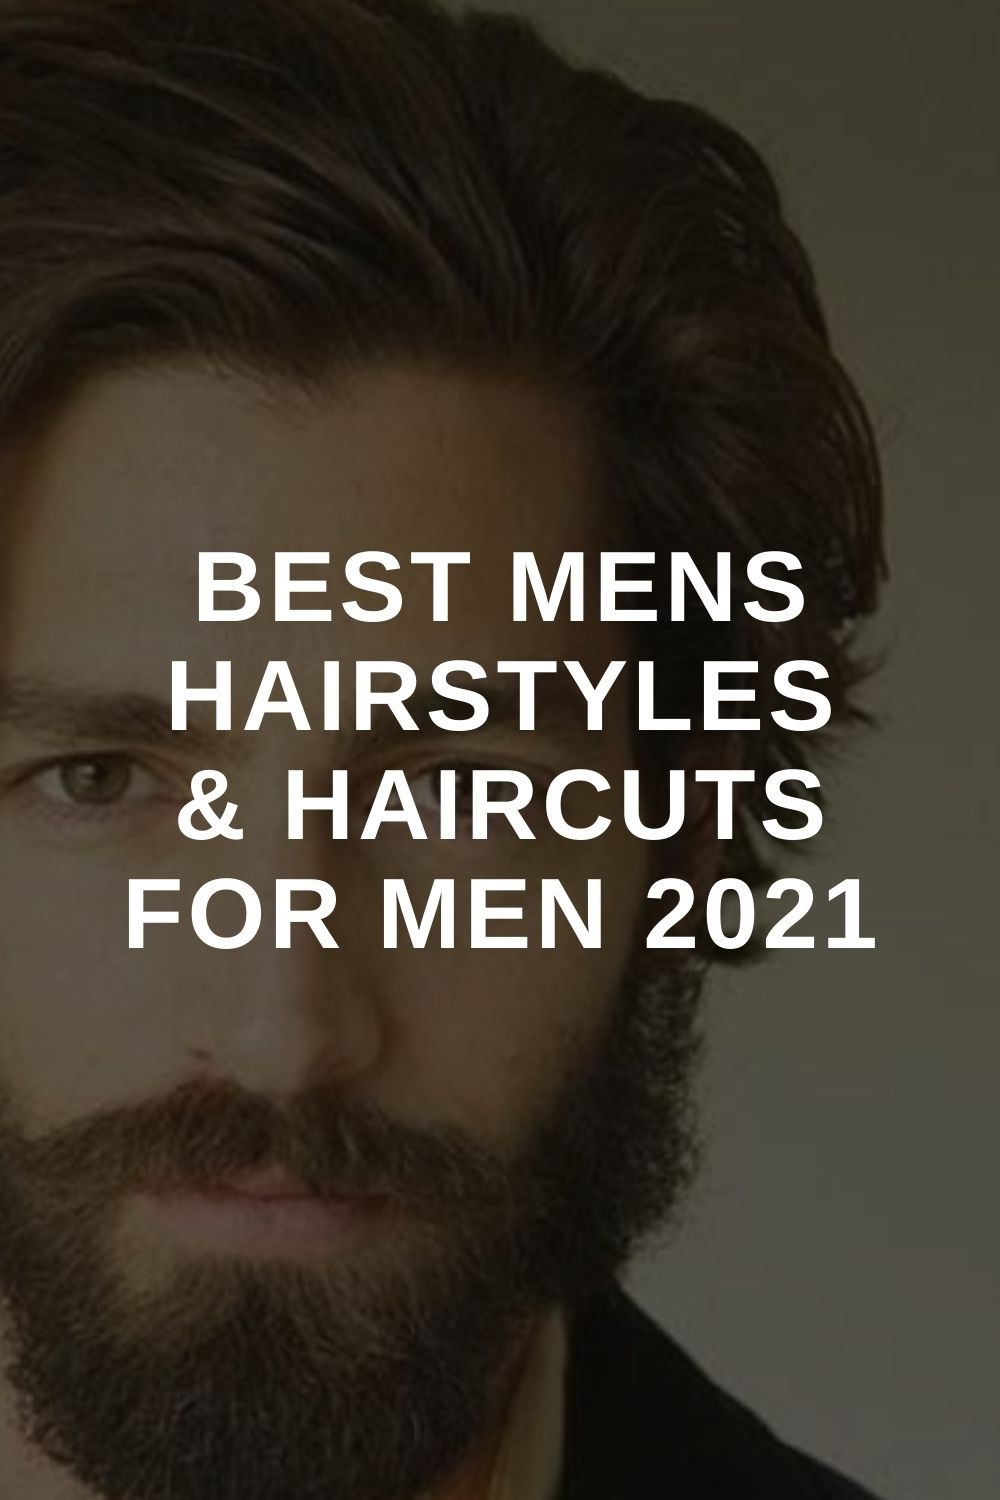 Best Mens Hairstyles & Haircuts For Men 2021